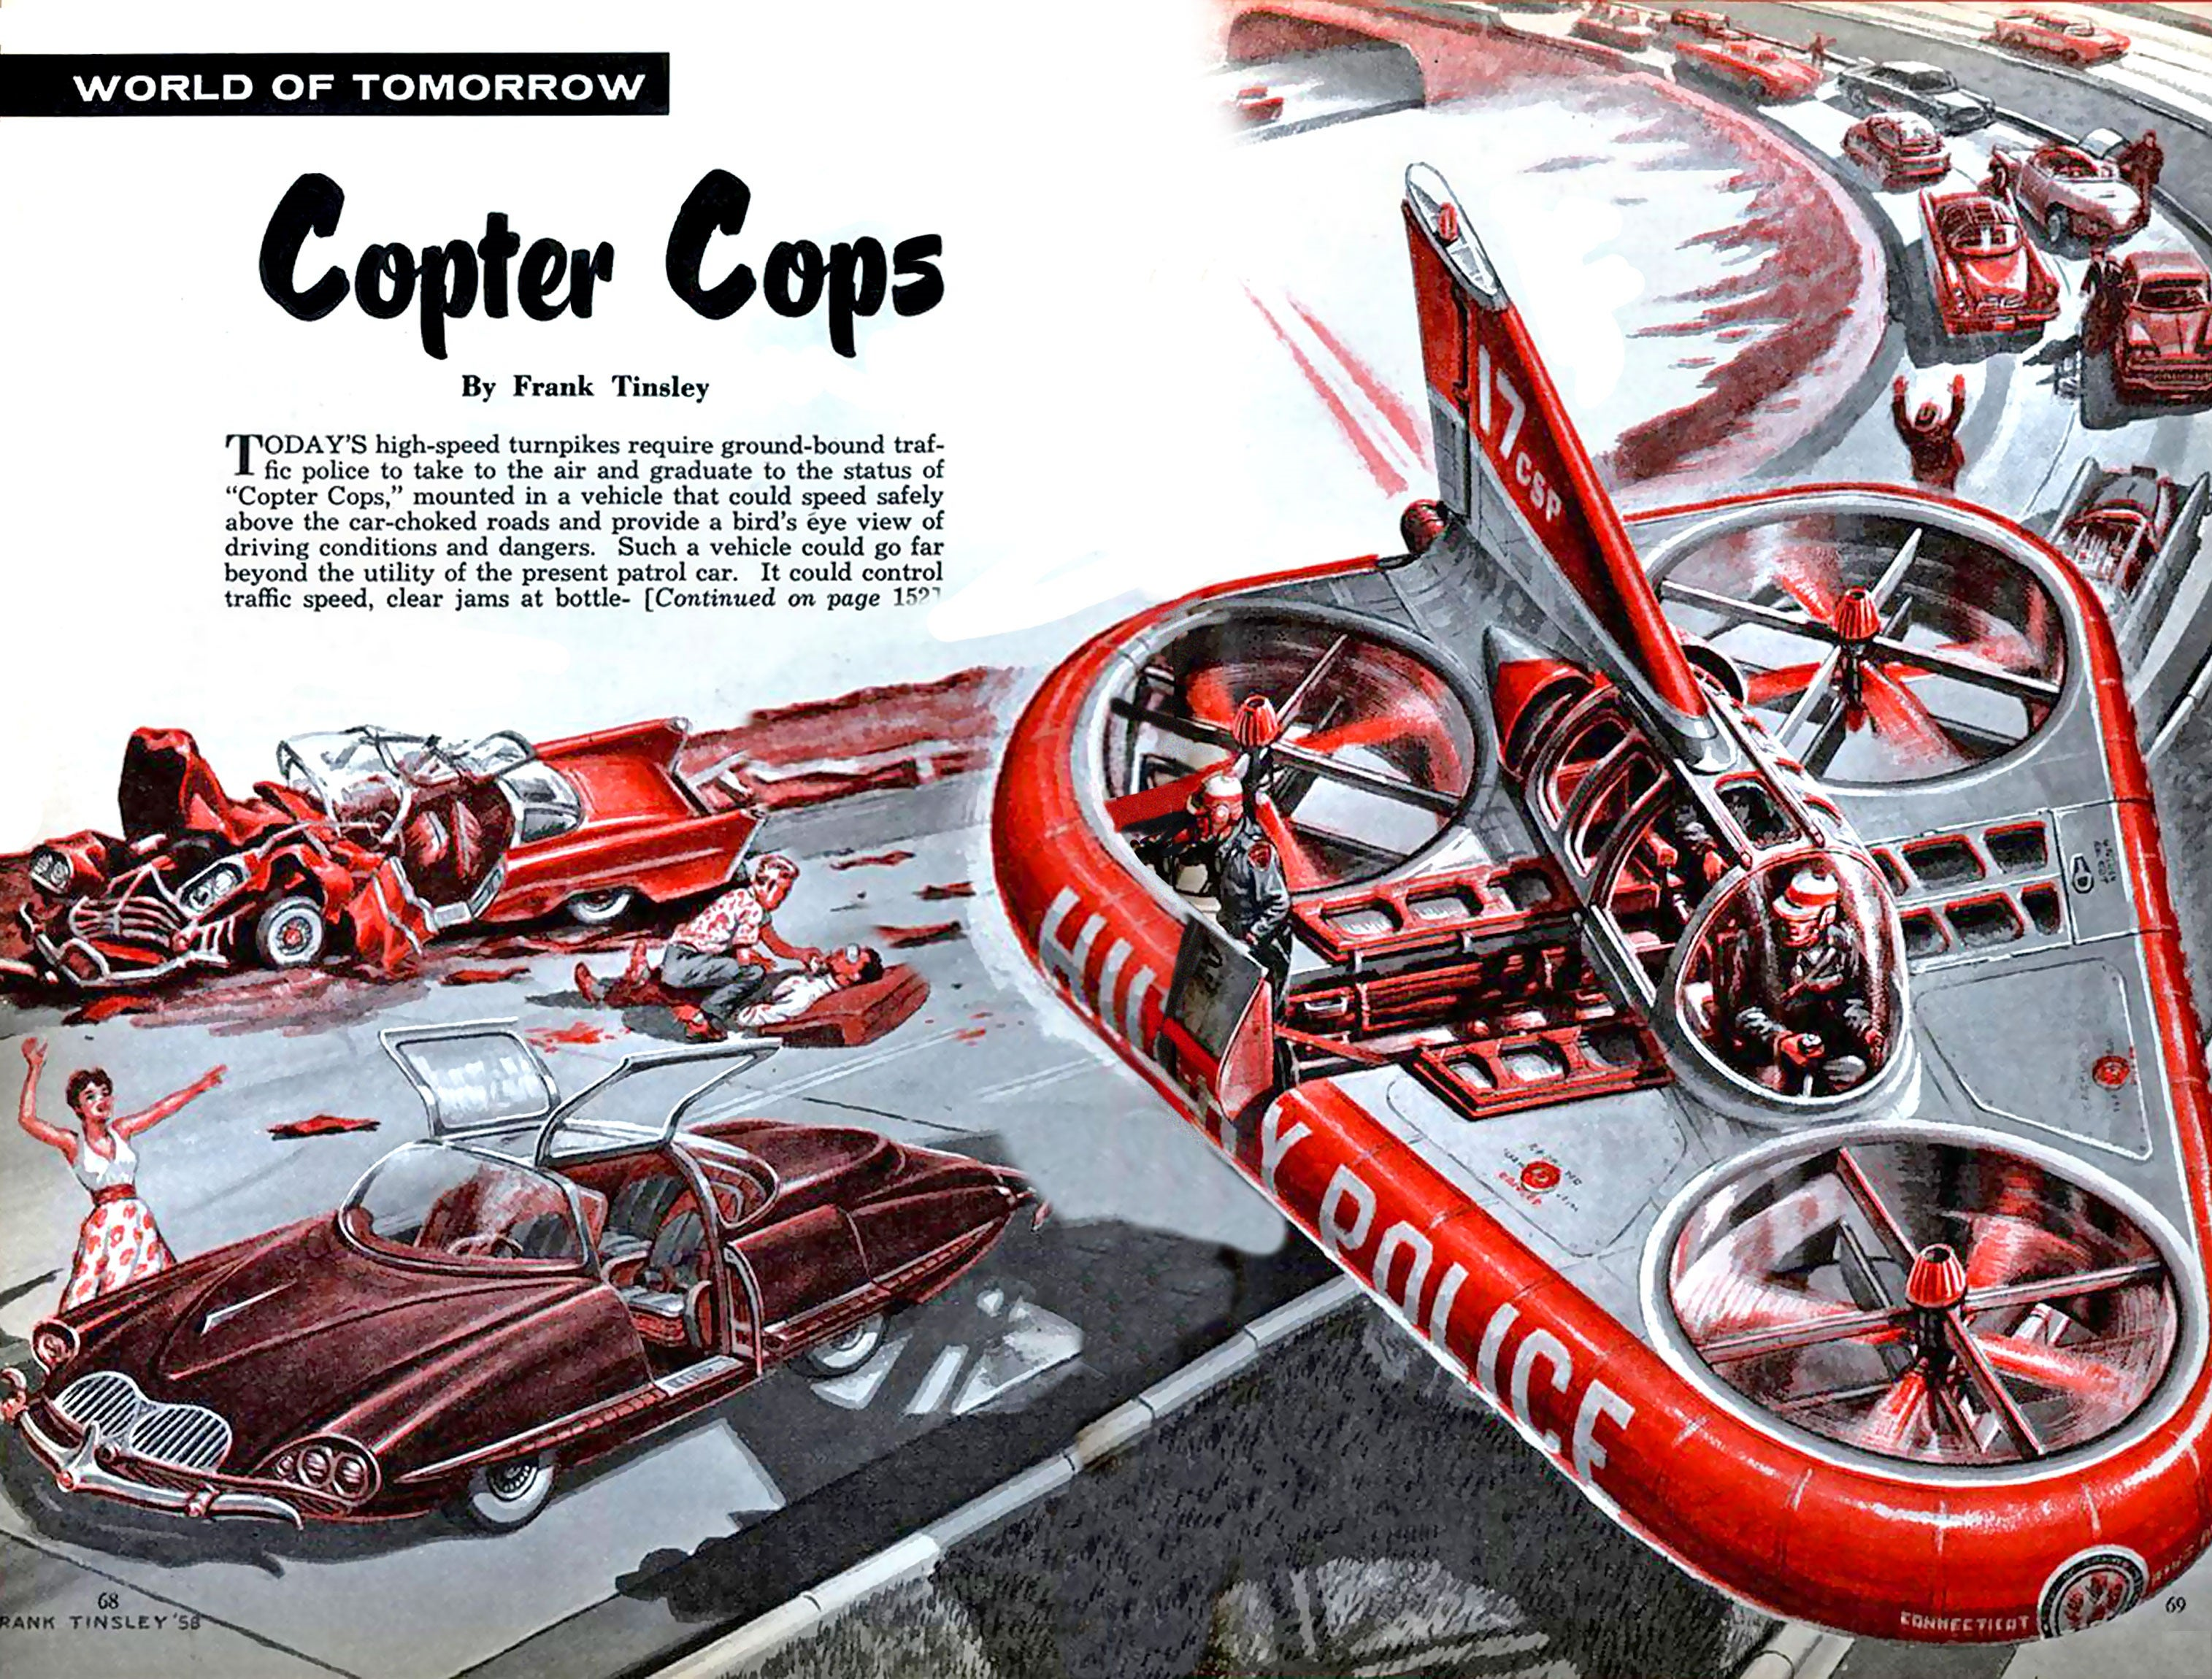 The Police Of The Future Were Going To Soar Over Traffic To Save Lives